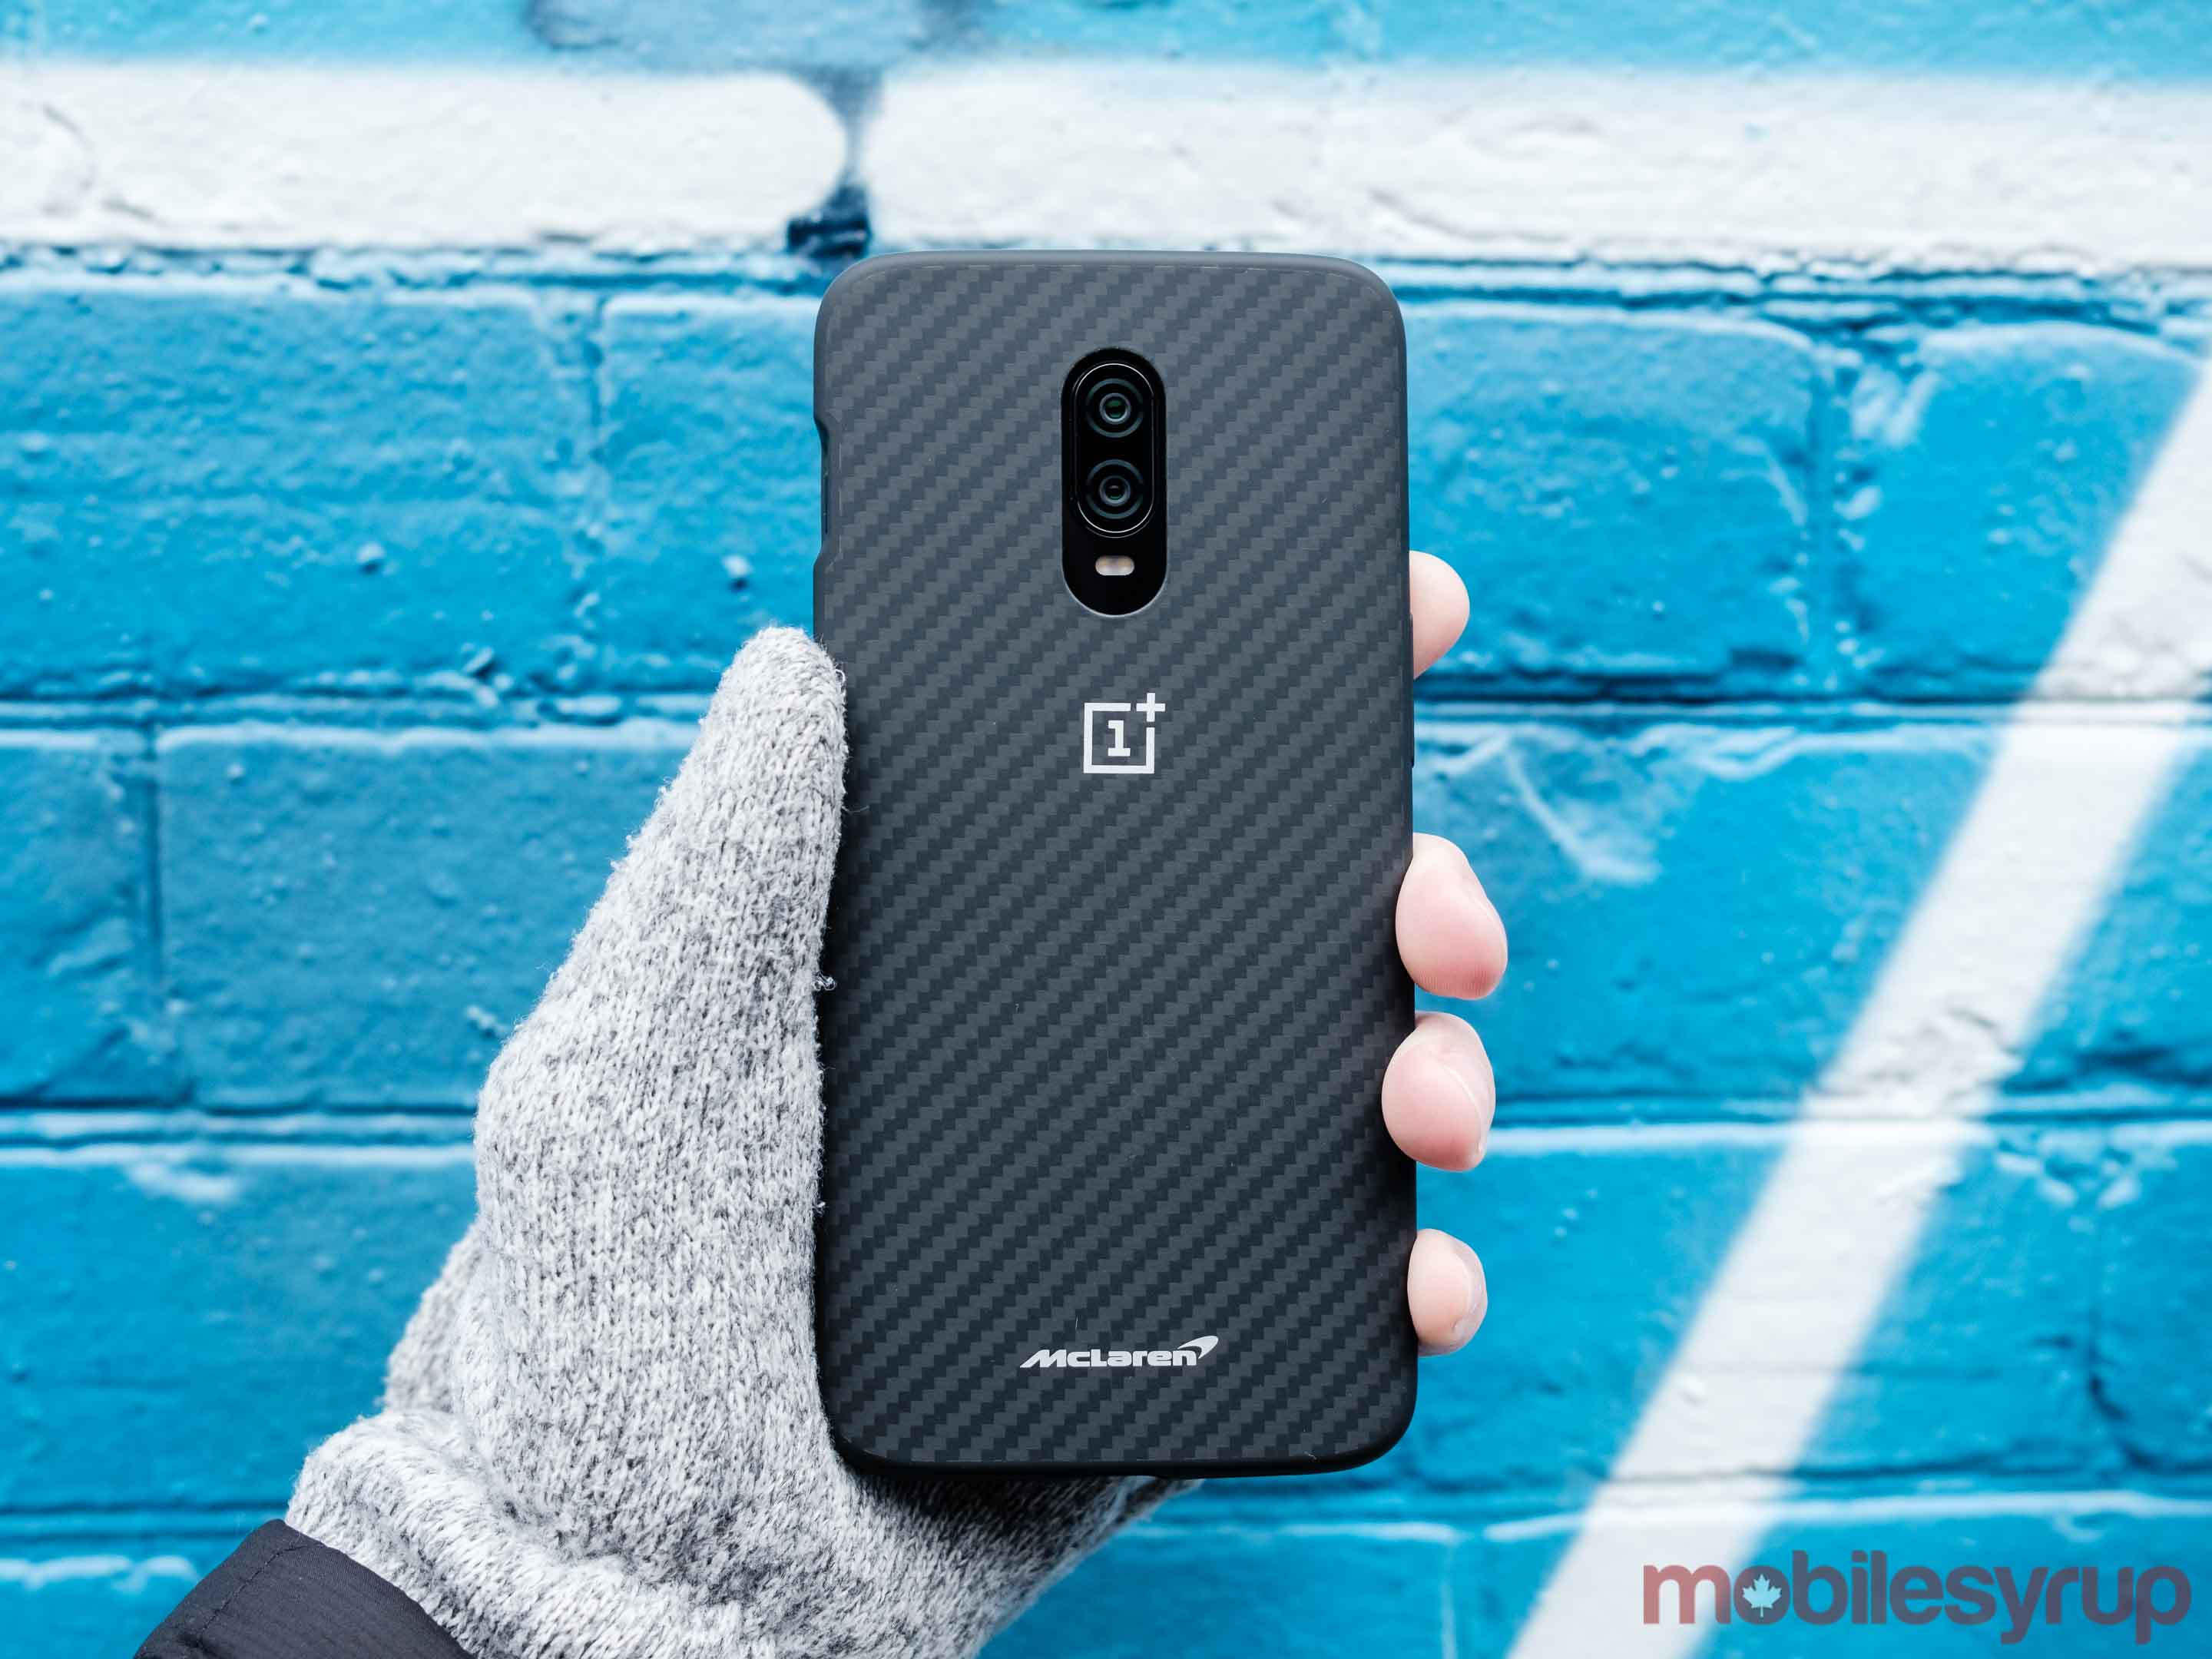 A Look At The Oneplus 6t Mclaren Edition Gallery